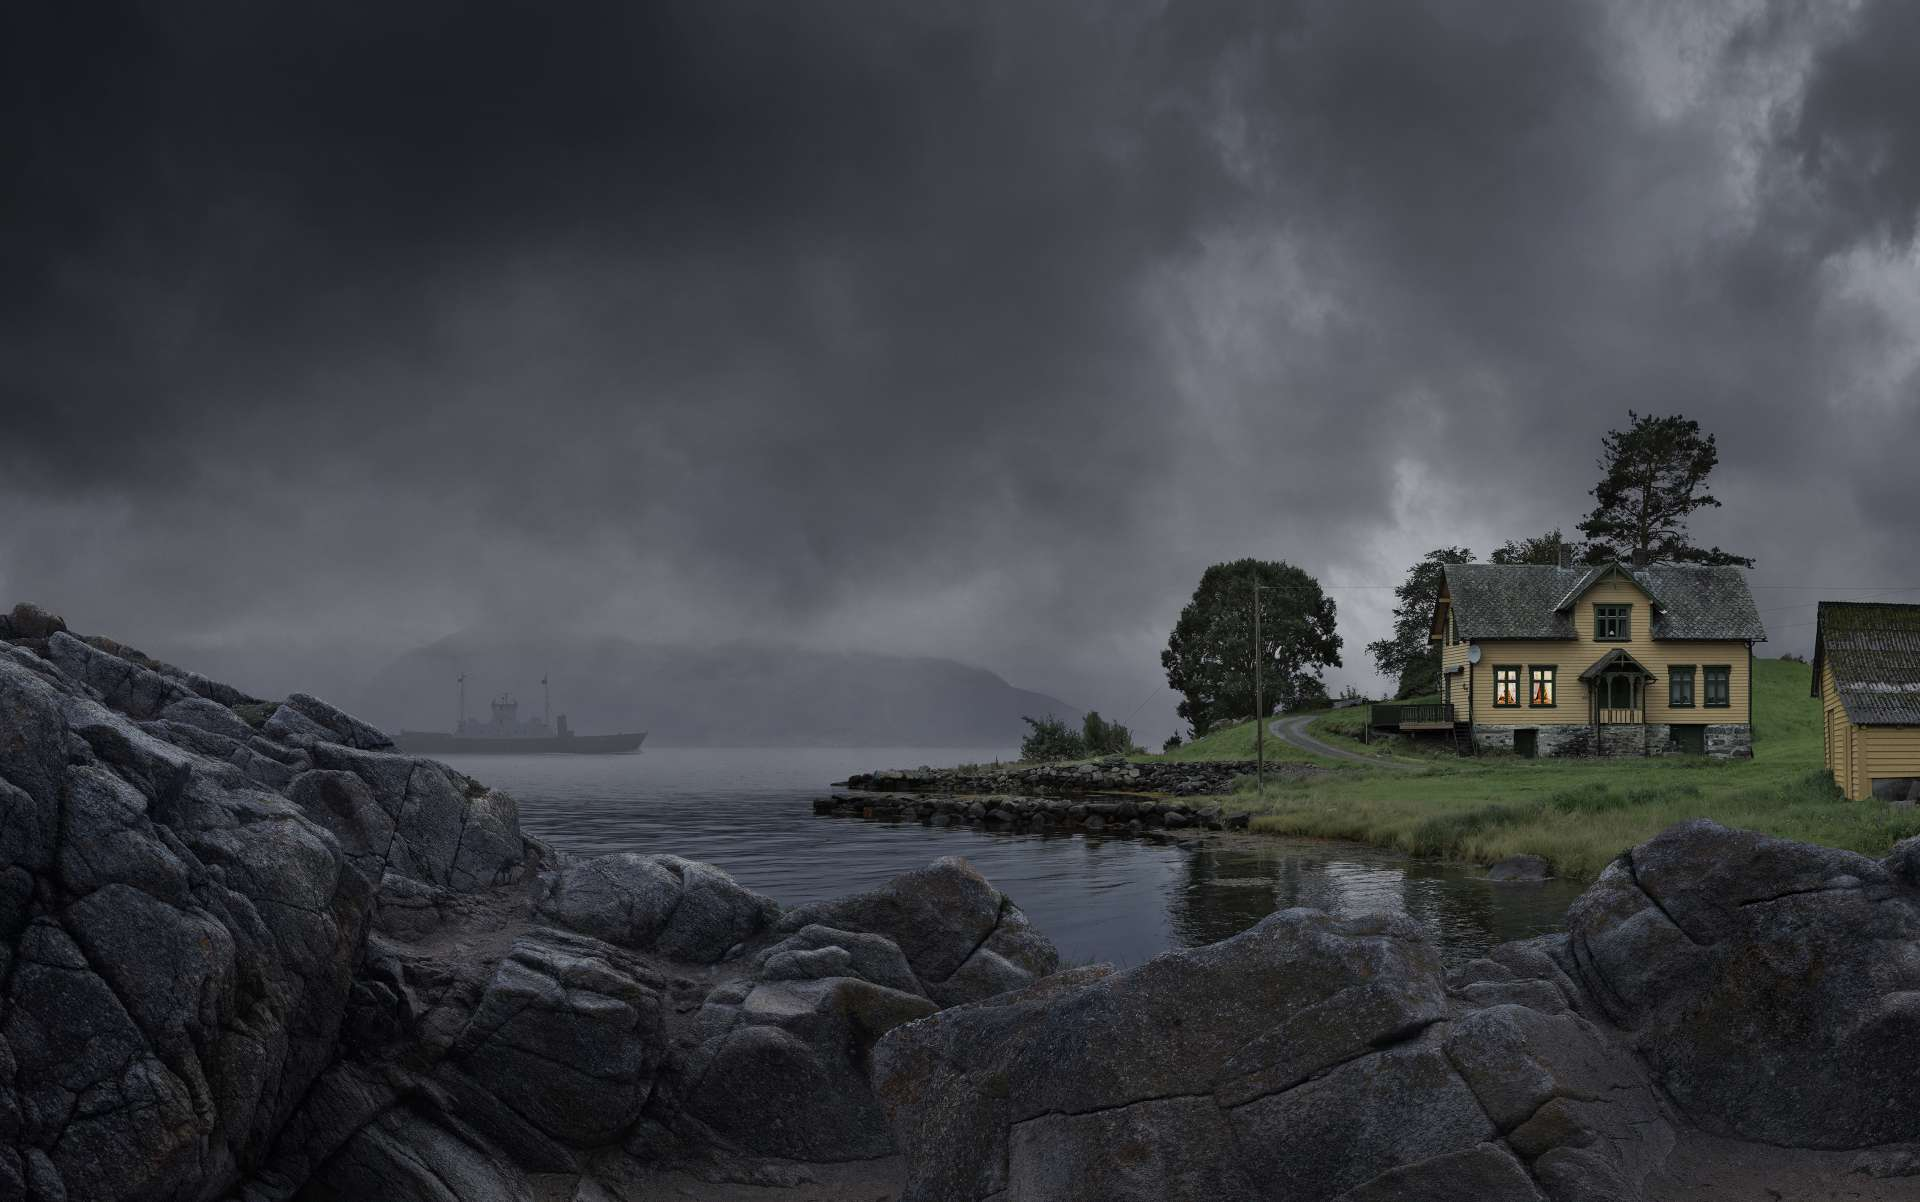 A dark day in Norway | Landscape | Koen De Muynck